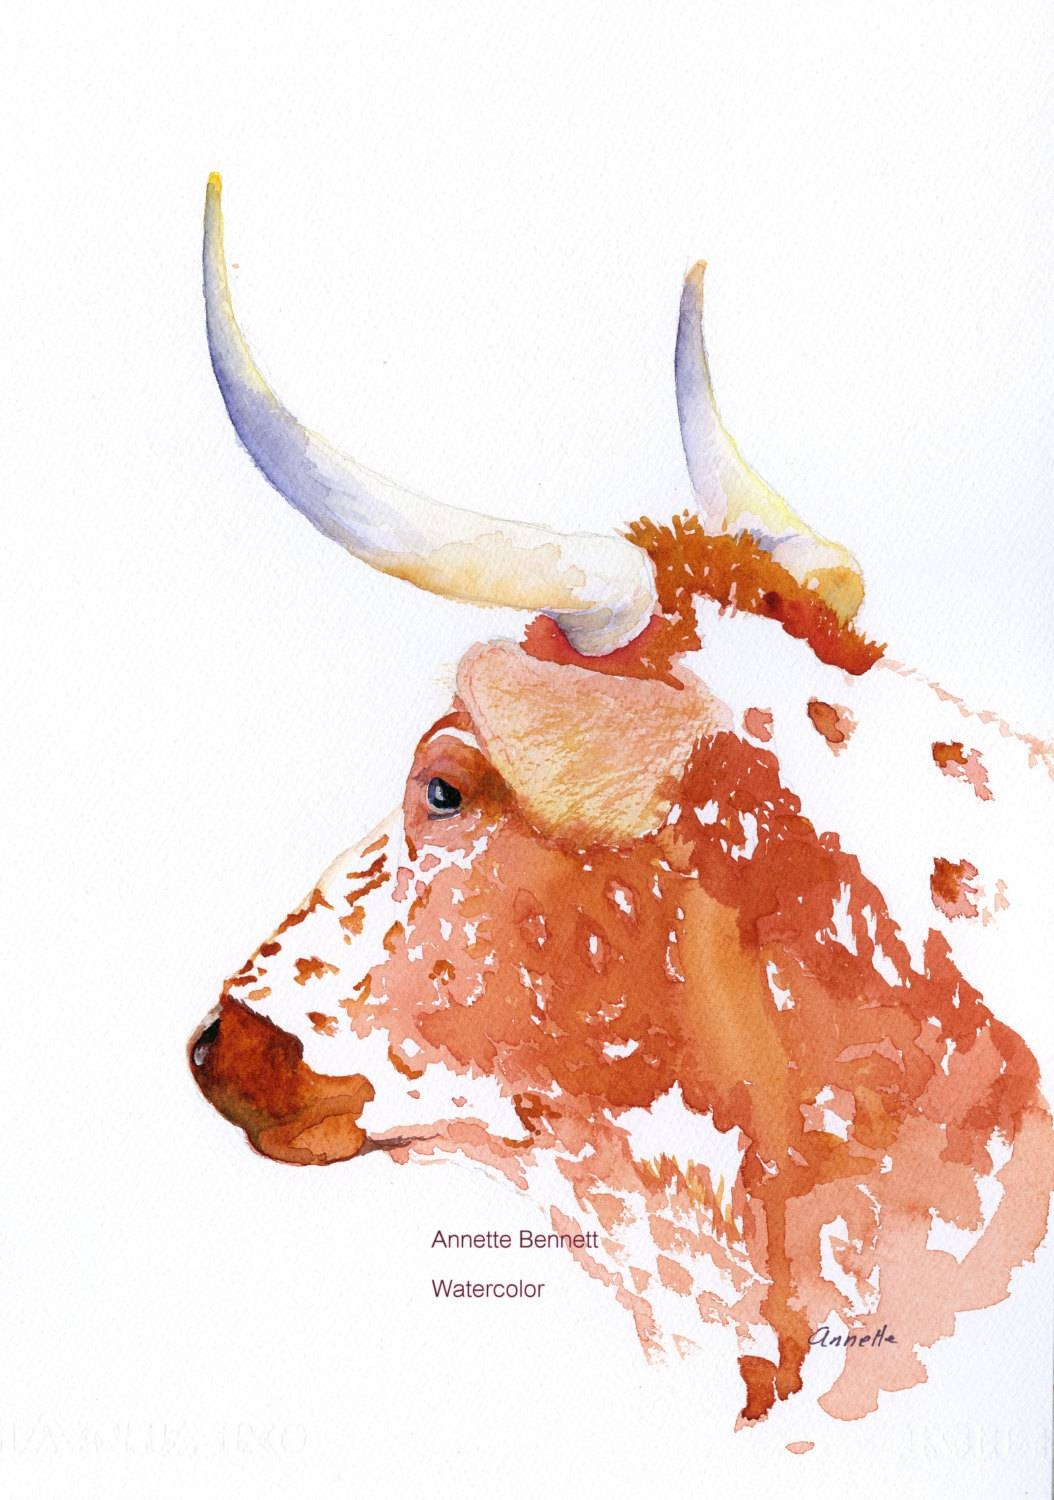 Kitchen Art Cow Painting Watercolor Animal Longhorn Pertaining To 2018 Farm Animal Wall Art (Gallery 14 of 20)